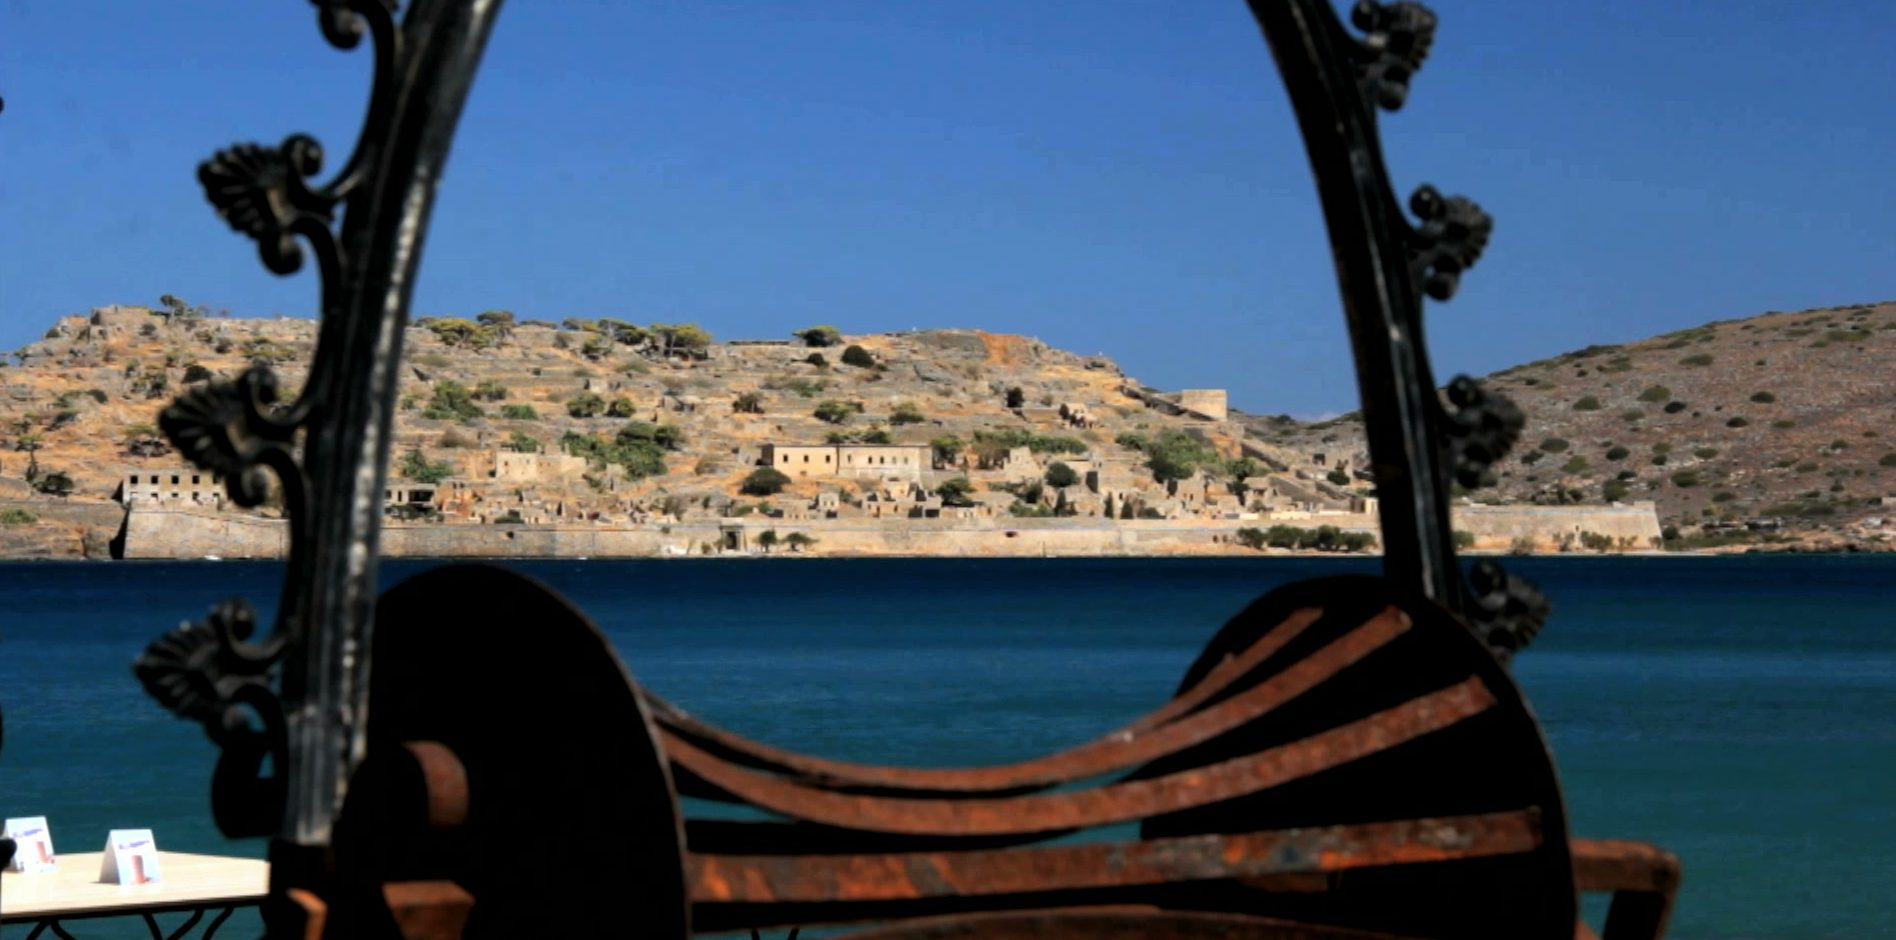 The Spinalonga Island